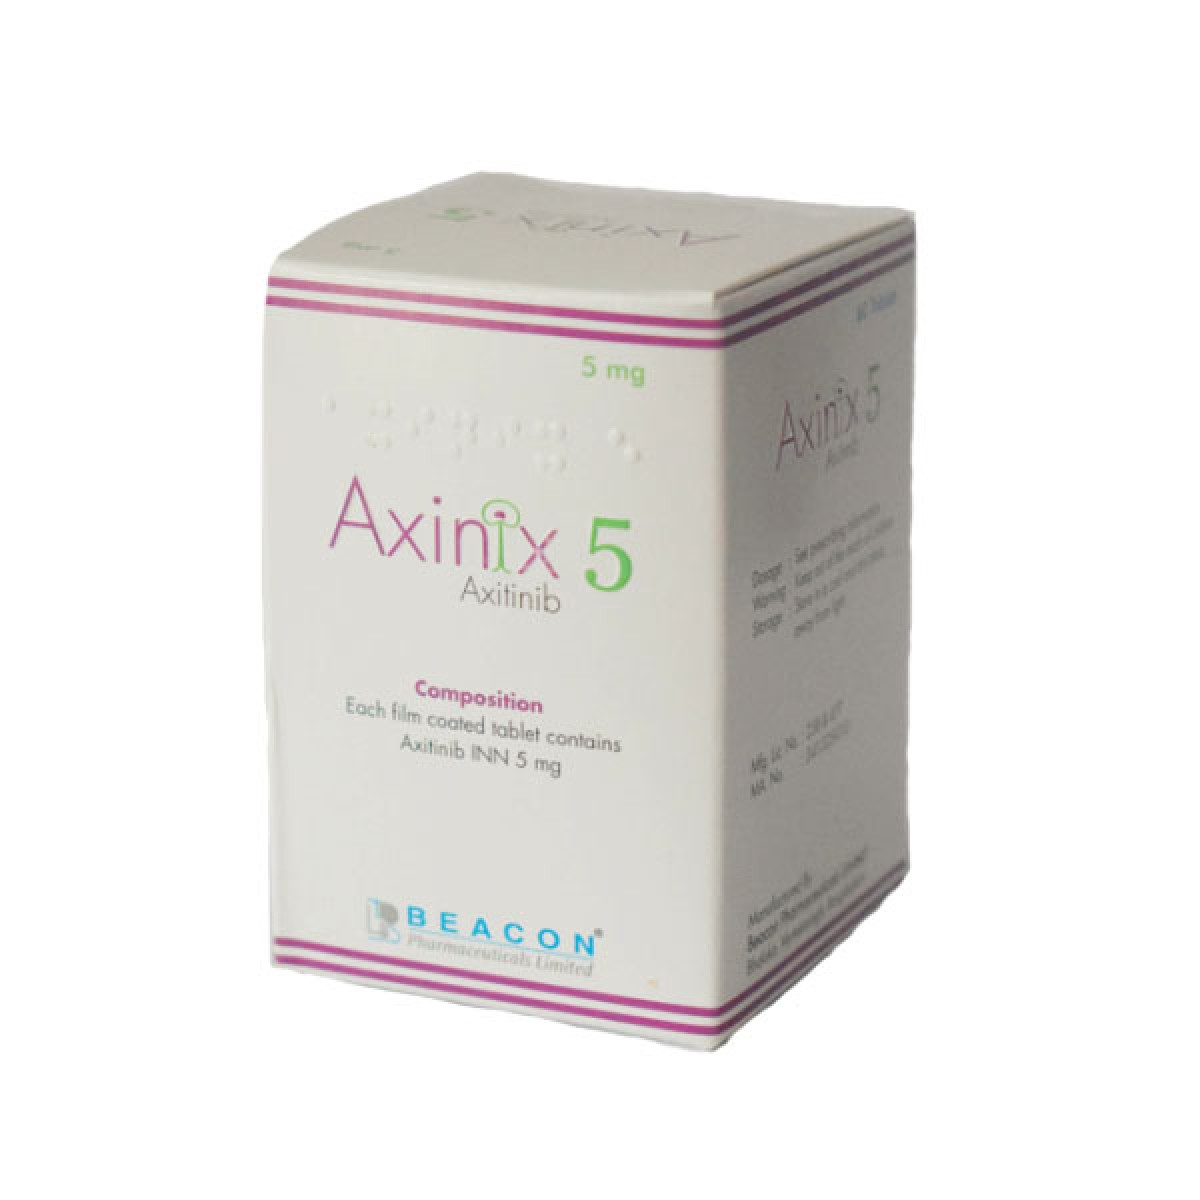 Axitinib  Axinix 5mg  ( Beacon )  阿昔替尼  阿西替尼 (英立達 )5mg